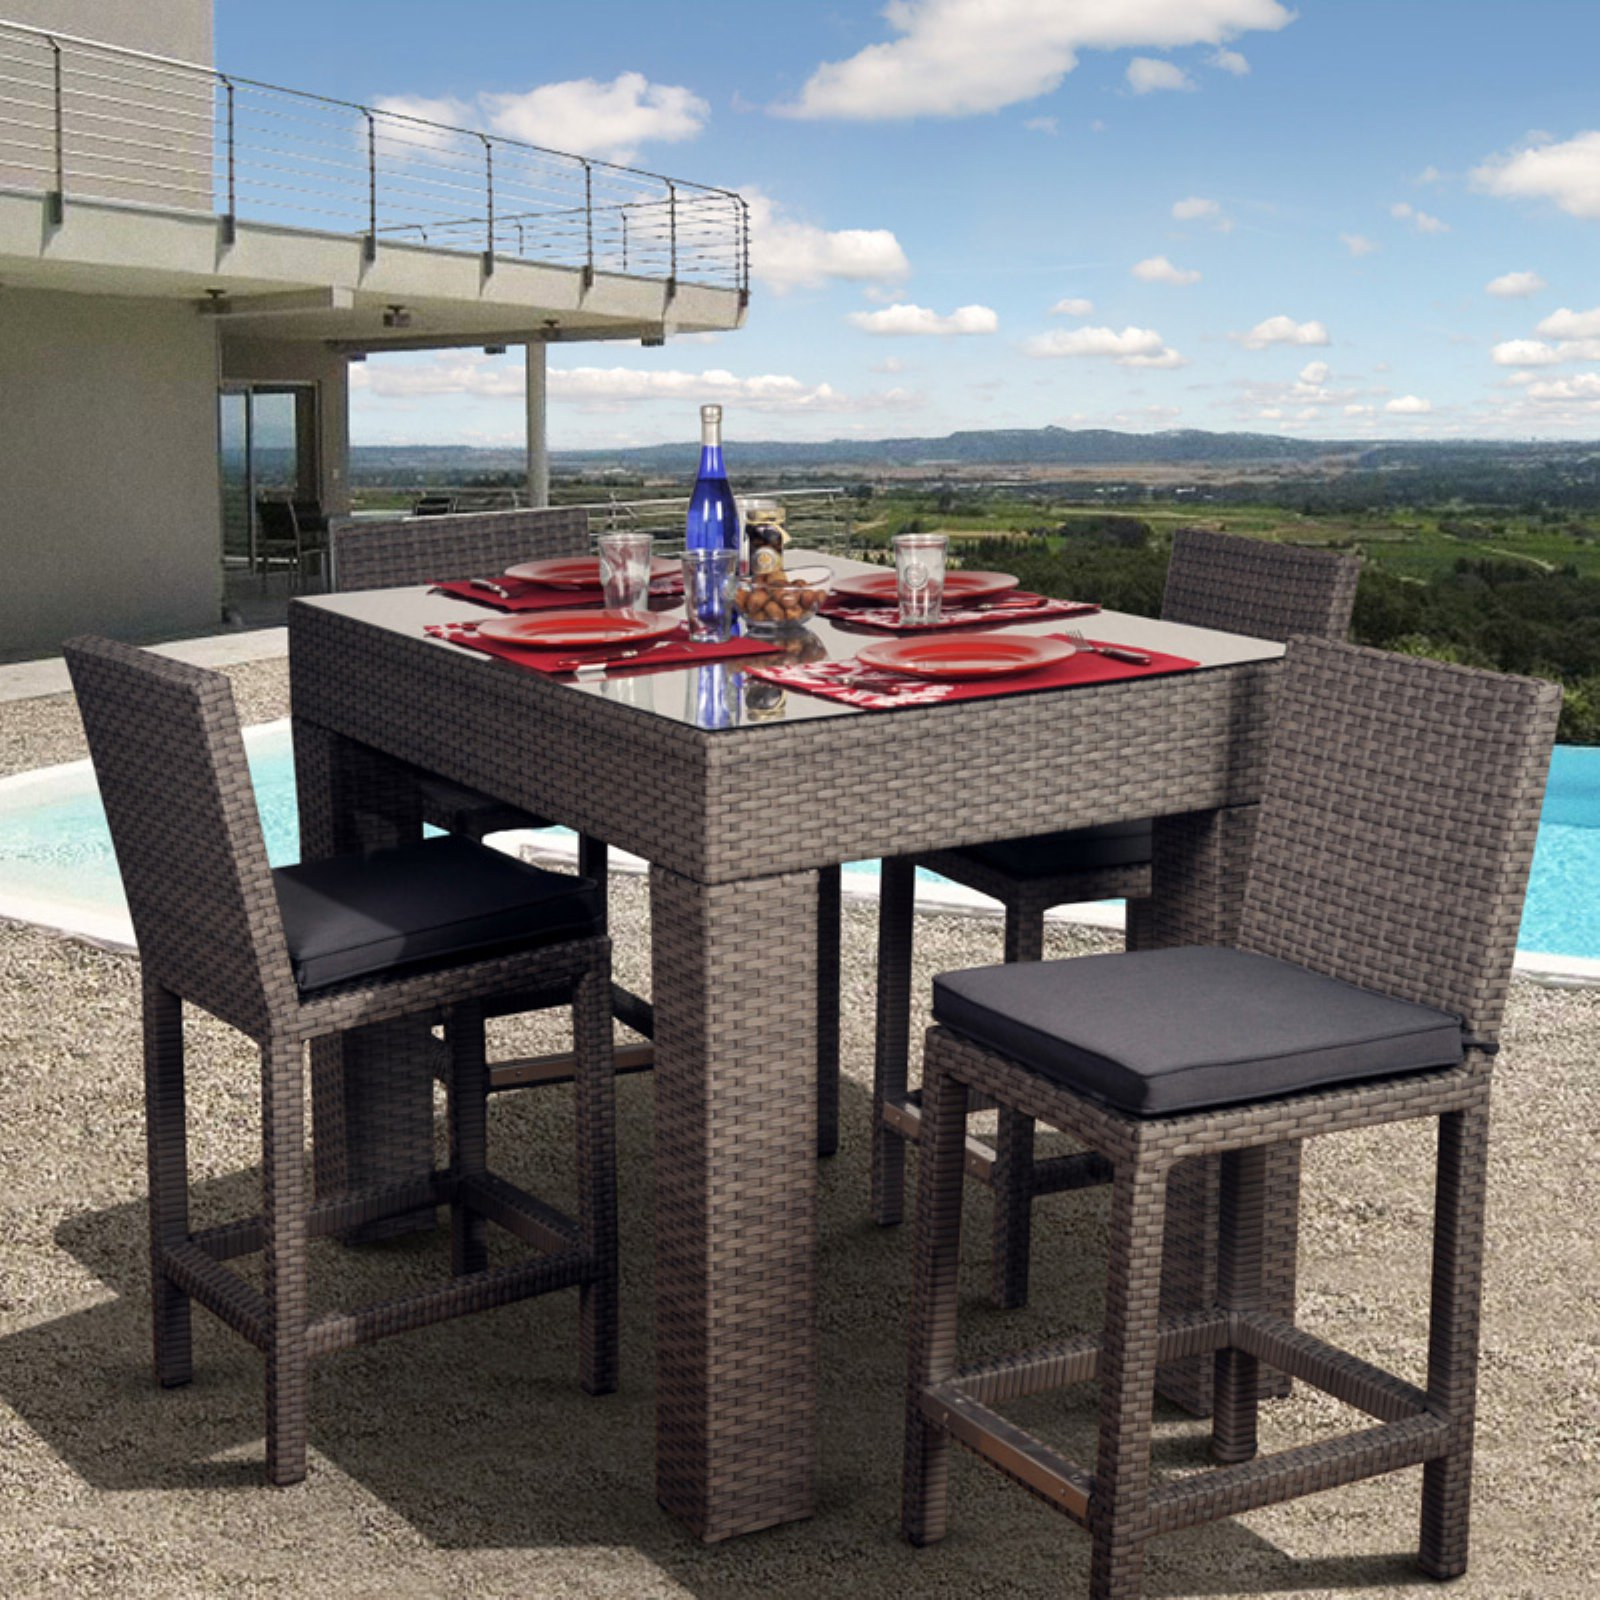 Atlantic Monza All-Weather Wicker Deluxe Bar Height Patio Dining Room Set Seats 4 by International Home Miami Corp